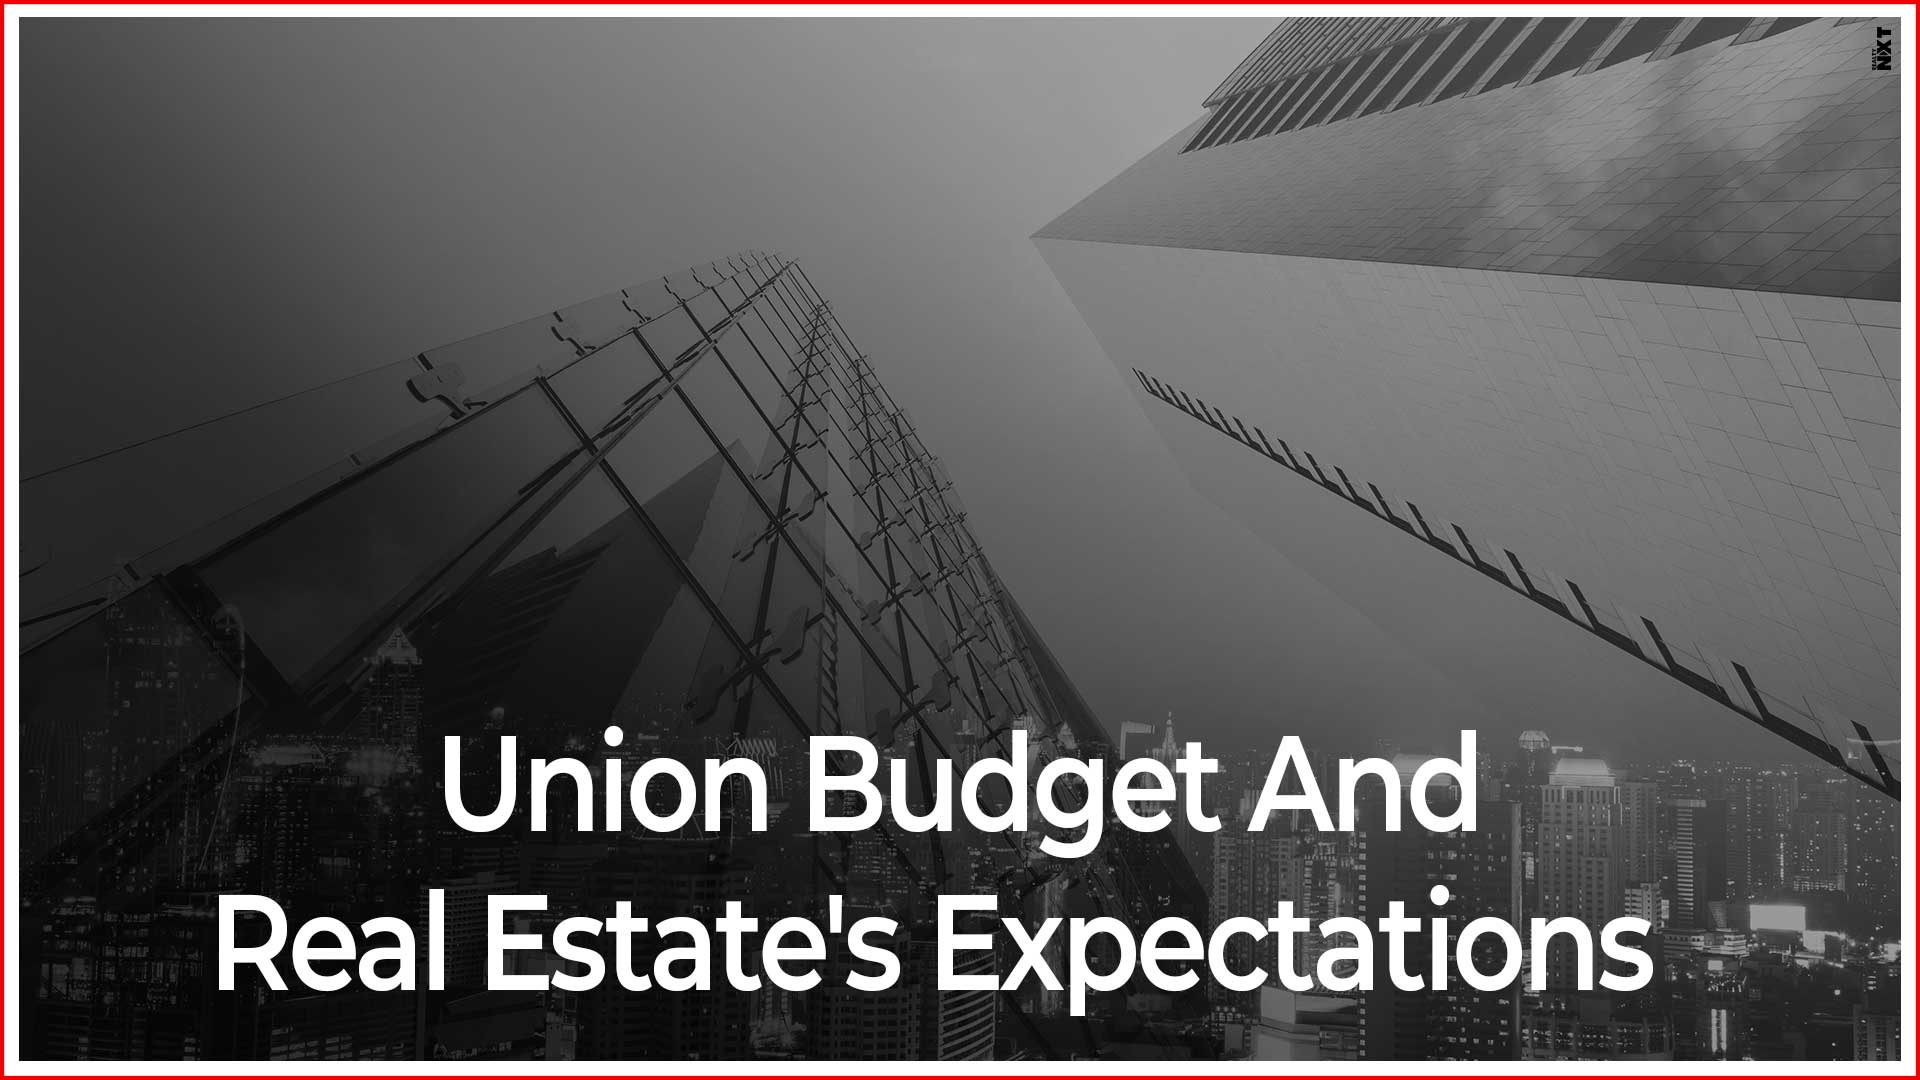 Union Budget: What Do The Developers Expect?